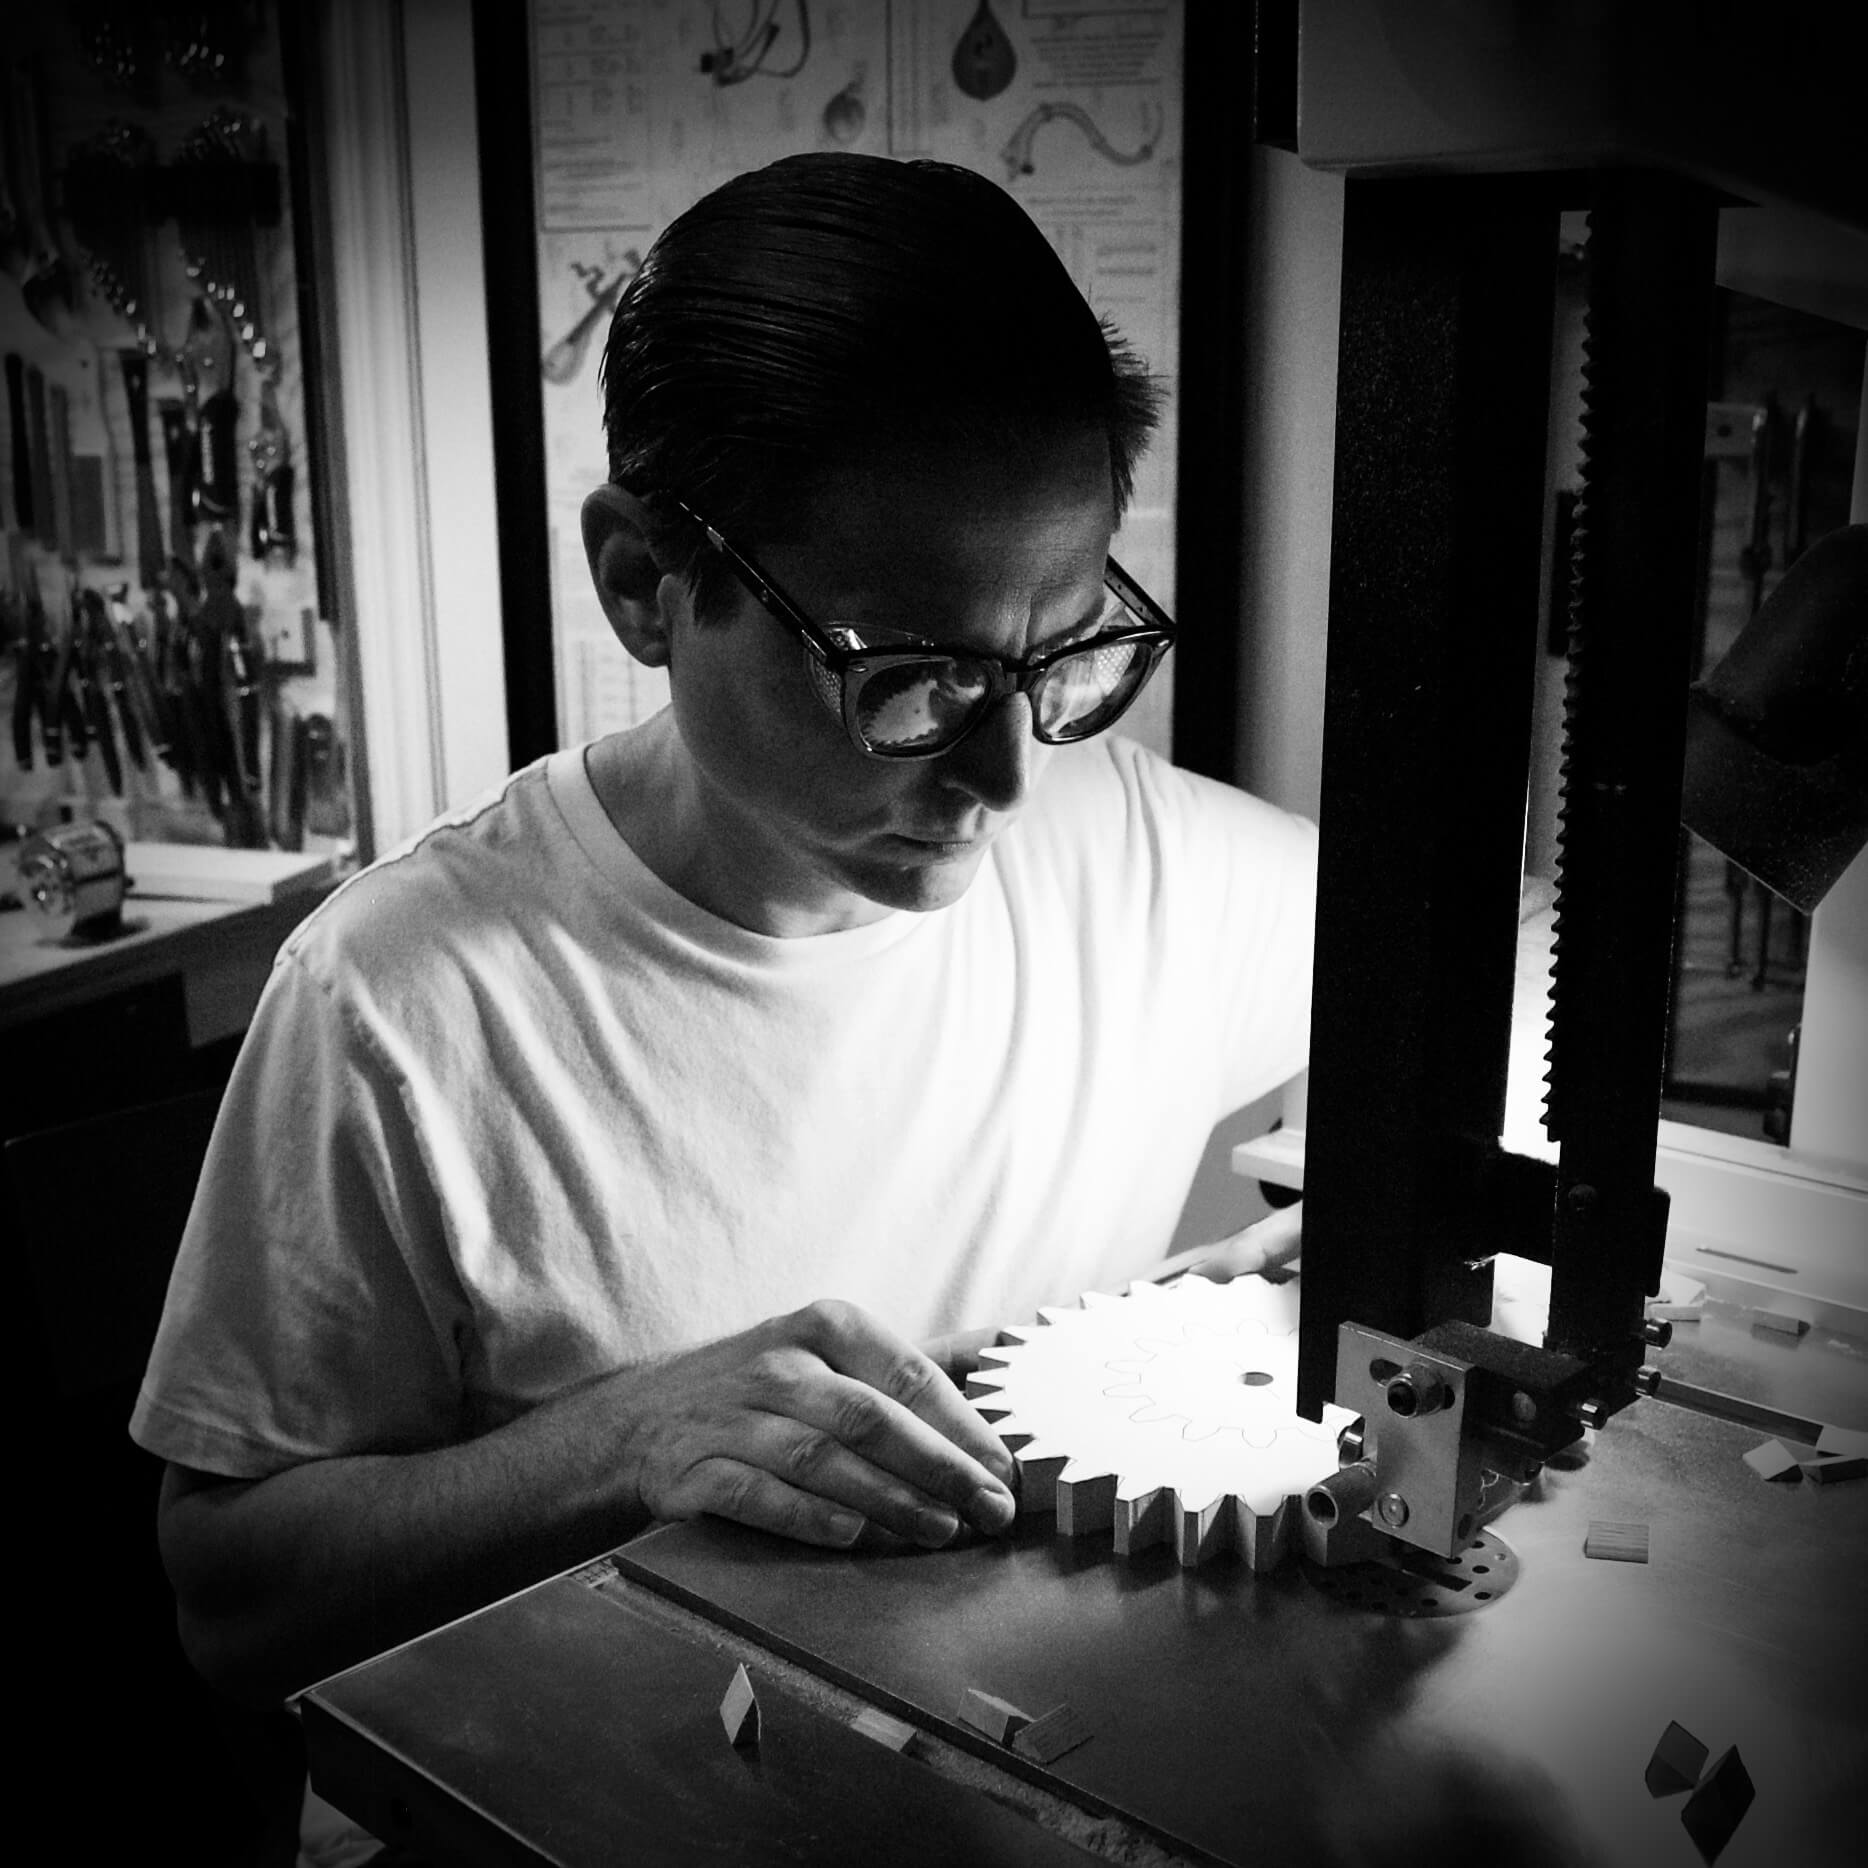 Ben making gears image in black and white